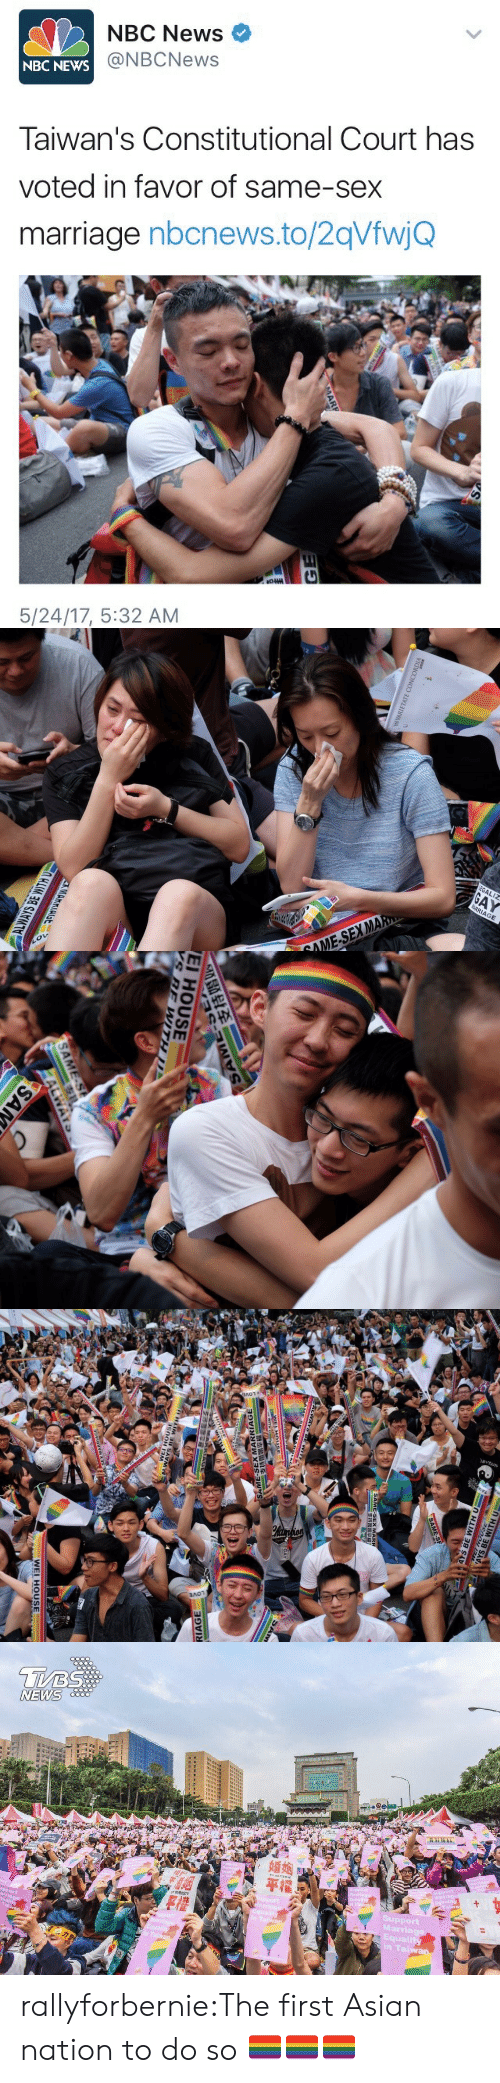 marriage equality: NBC News  @NBCNews  NBC  NEWS  Taiwan's Constitutional Court has  voted in favor of same-sex  marriage nbcnews.to/2qVfwjQ  5/24/17, 5:32 AM   EGALIZ  RRIAGE  MA  OME-SEX   EI HOUSE   NEWS  平權  Marriage  Equality  Tai rallyforbernie:The first Asian nation to do so 🏳️‍🌈🏳️‍🌈🏳️‍🌈